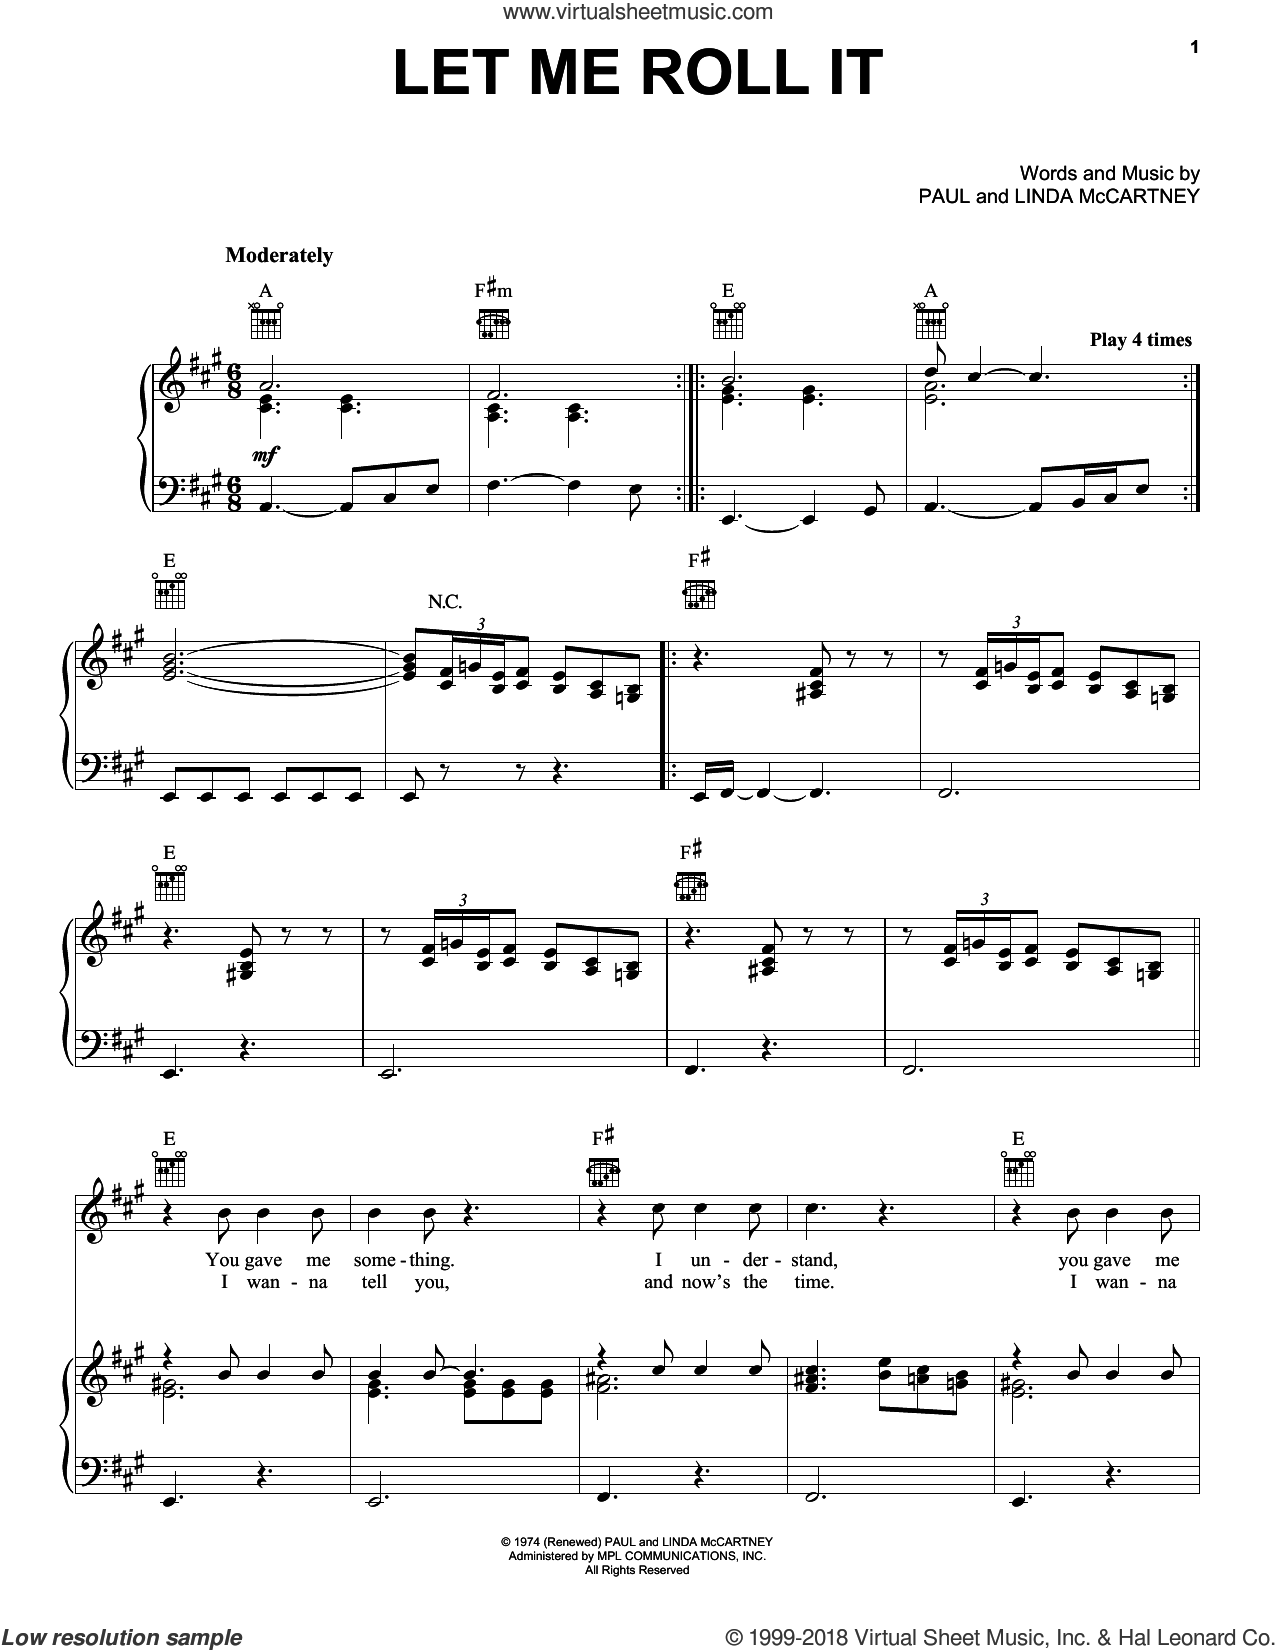 Let Me Roll It sheet music for voice, piano or guitar by Paul McCartney and Linda McCartney, intermediate skill level